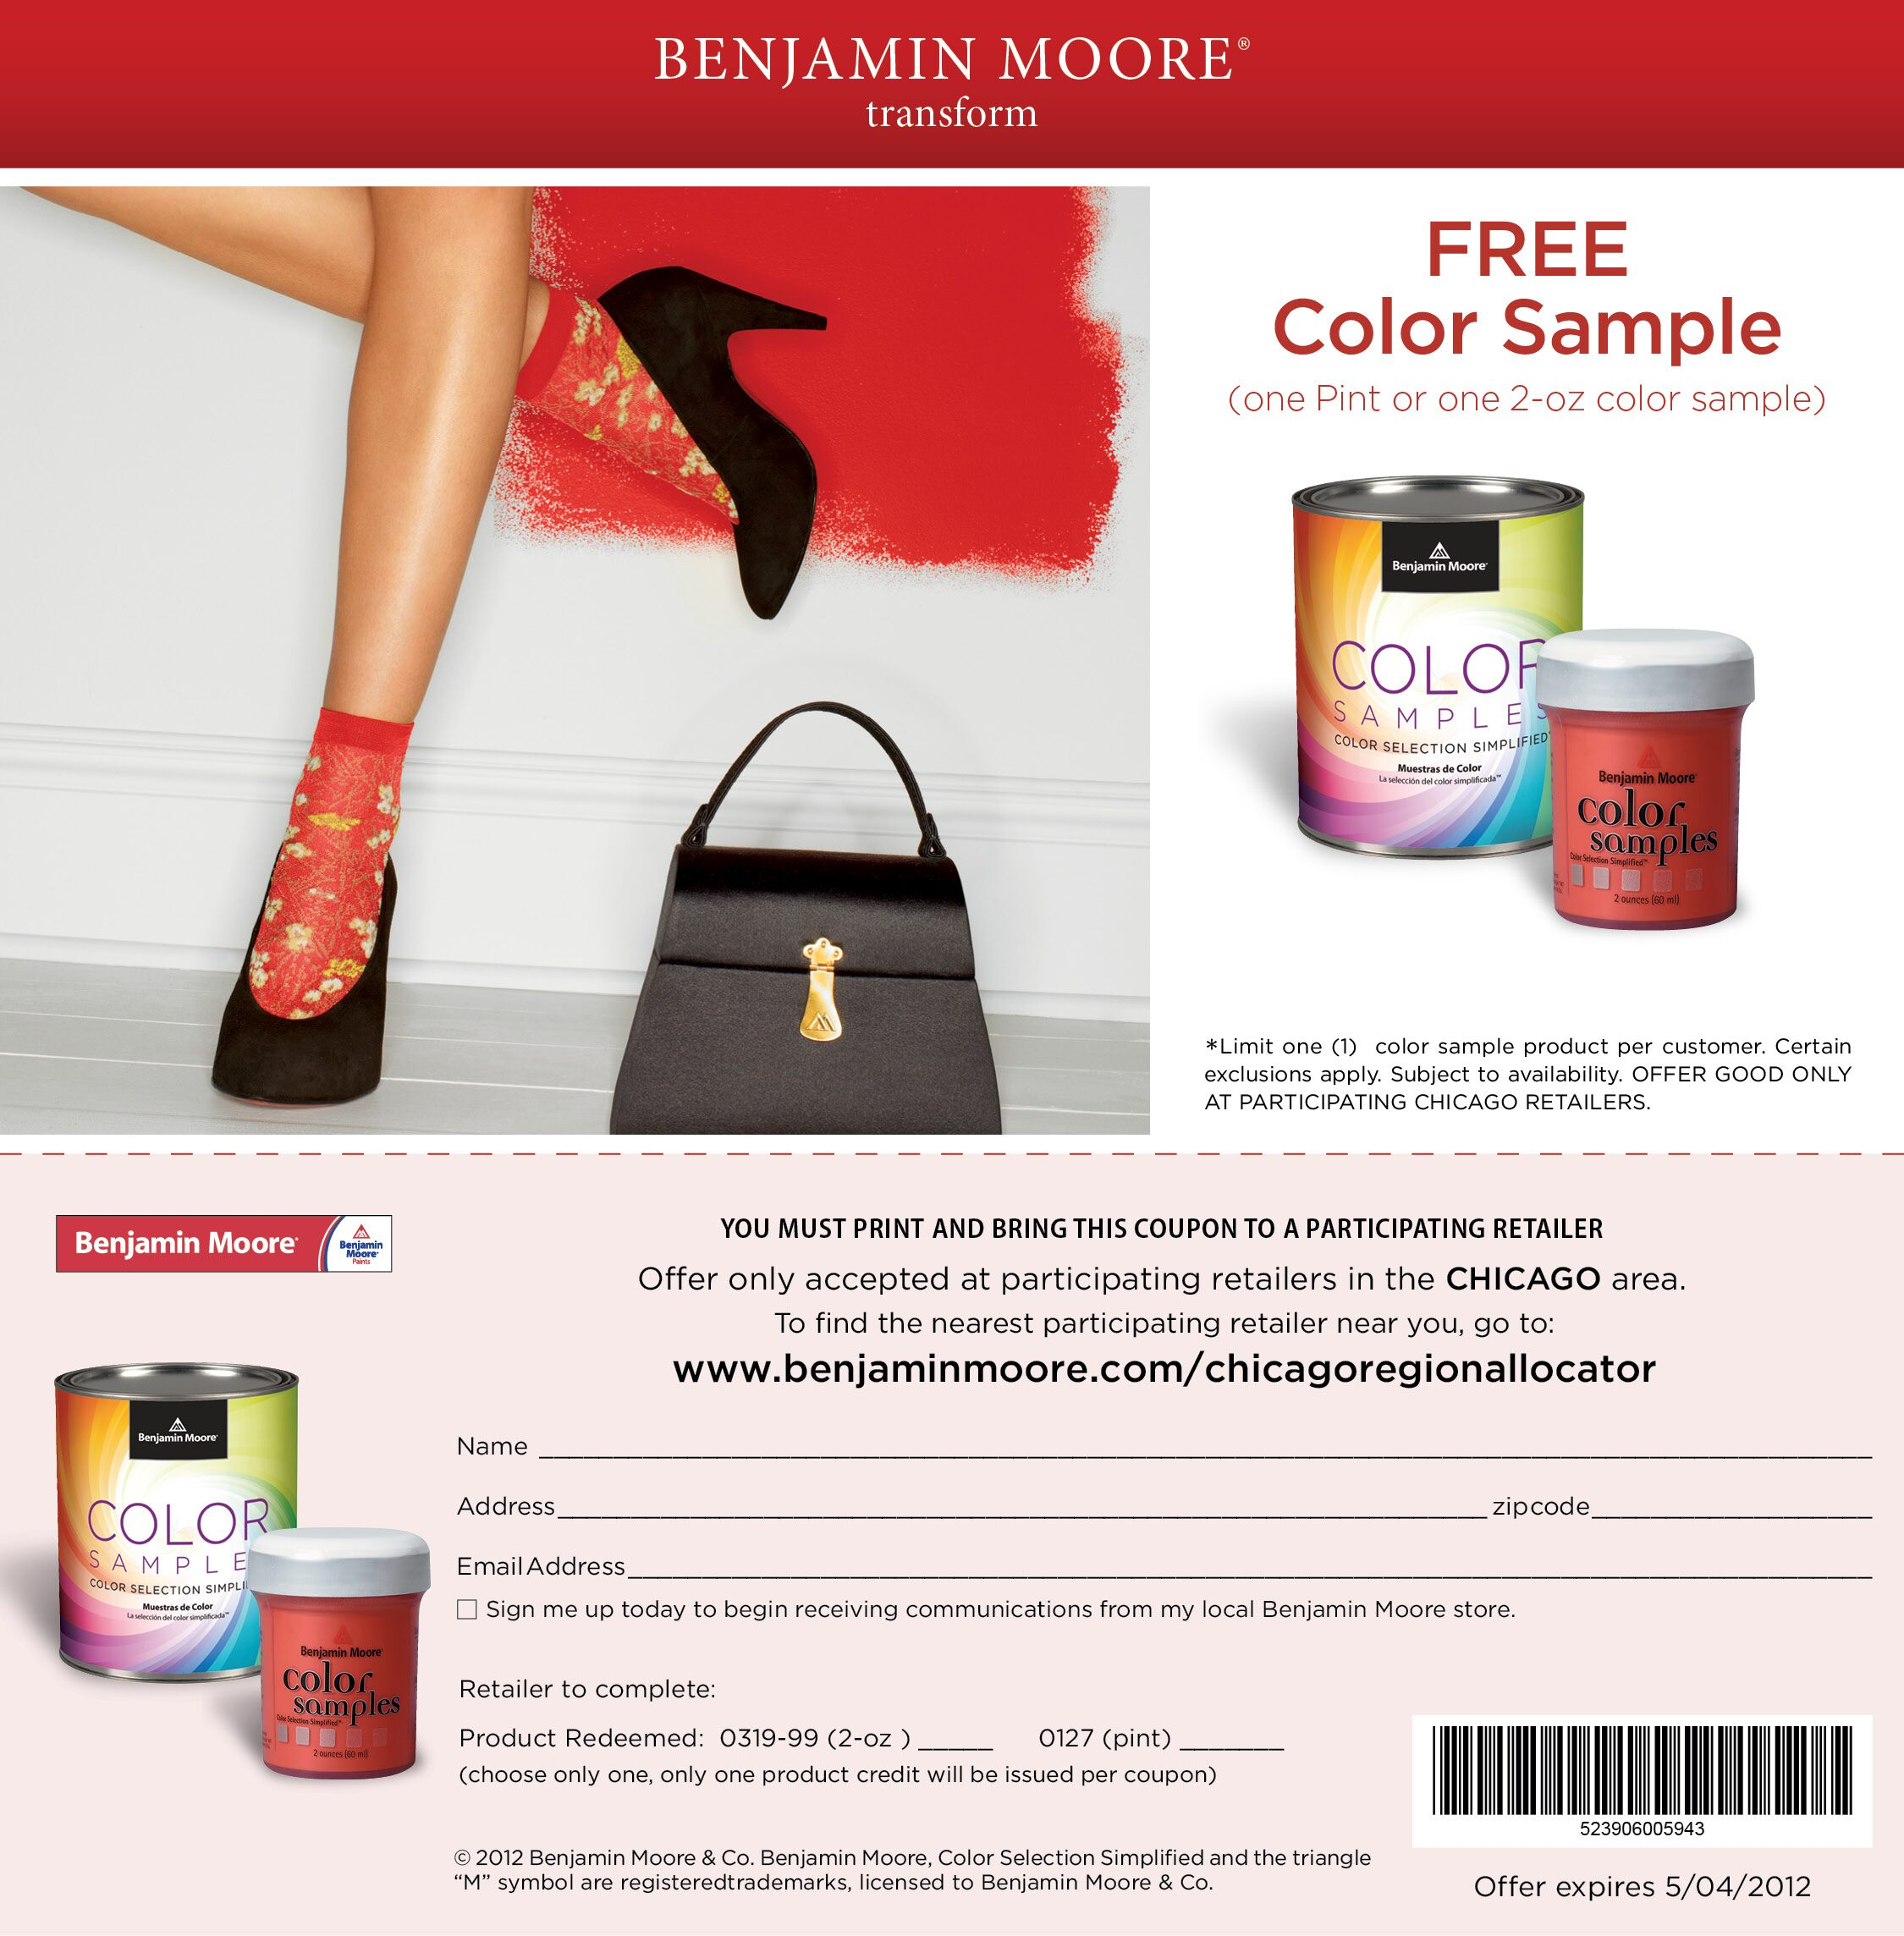 photo about Benjamin Moore Printable Coupon identified as Absolutely free Benjamin Moore Pint Coloration Pattern For Chicago Citizens